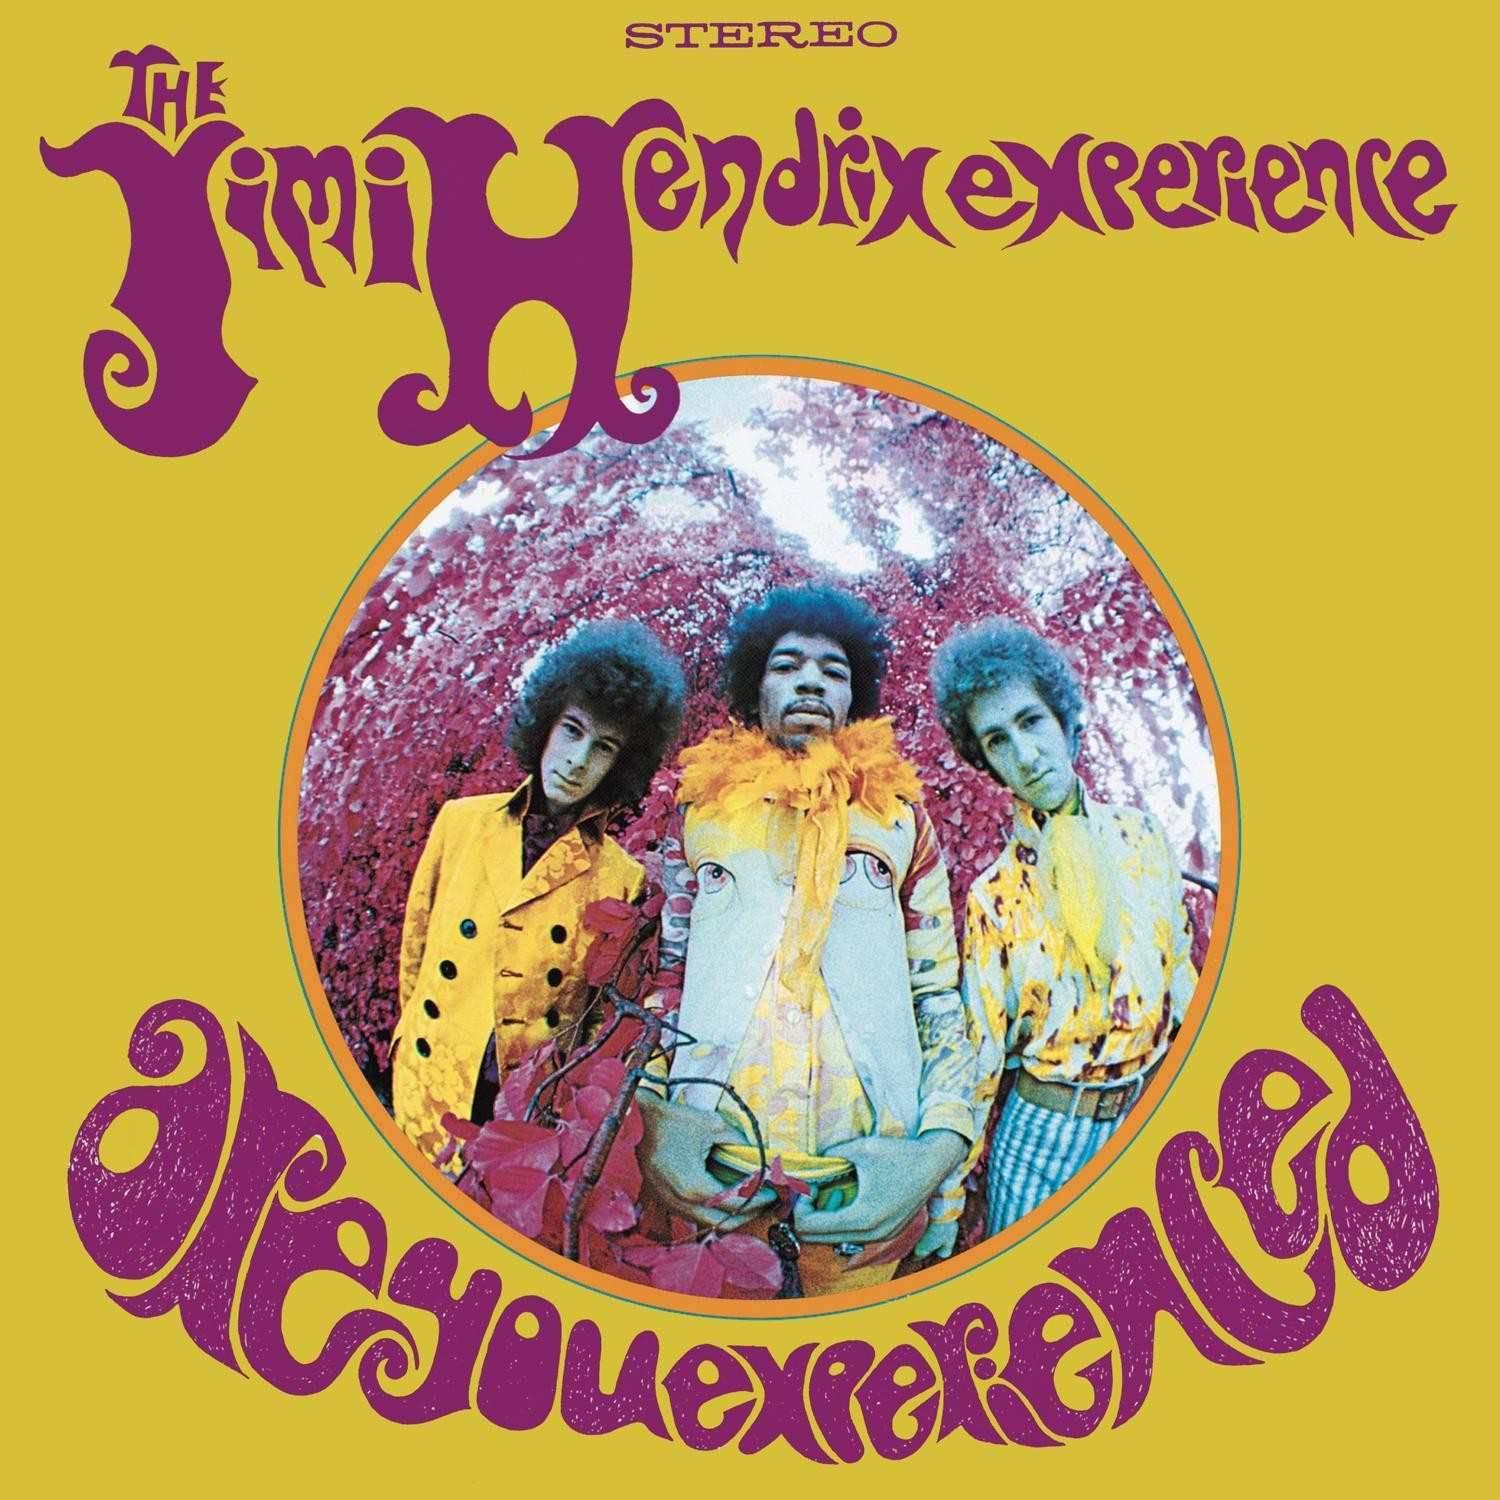 Jimi Hendrix - Are You Experienced LP